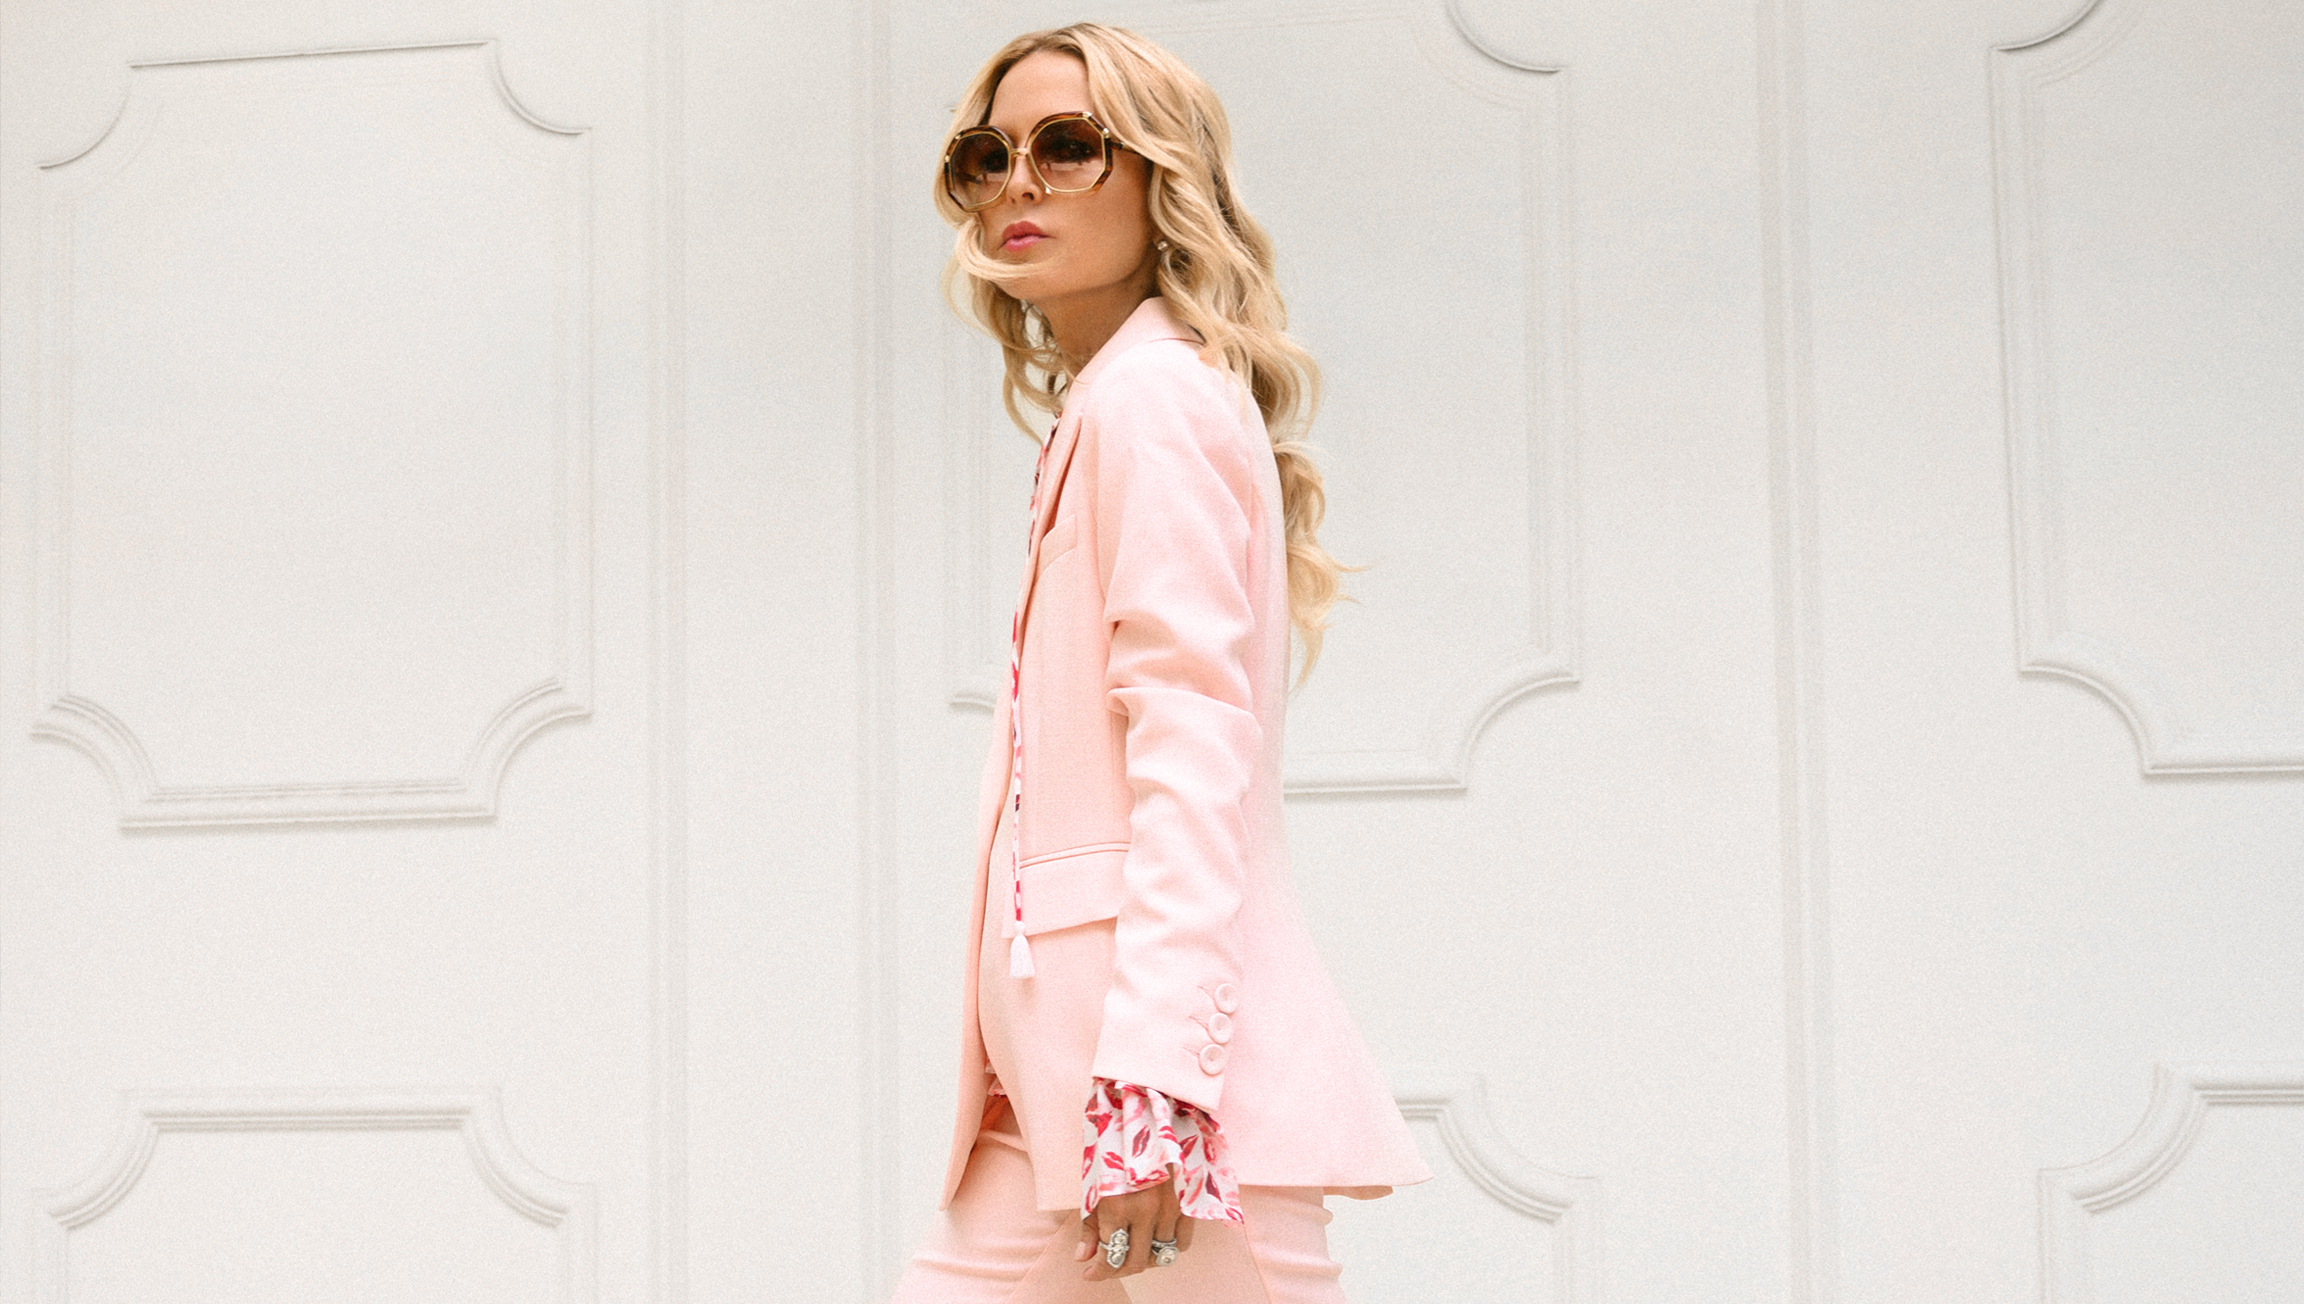 Rachel Zoe Social Content - Photography for @rachelzoe and her social channels